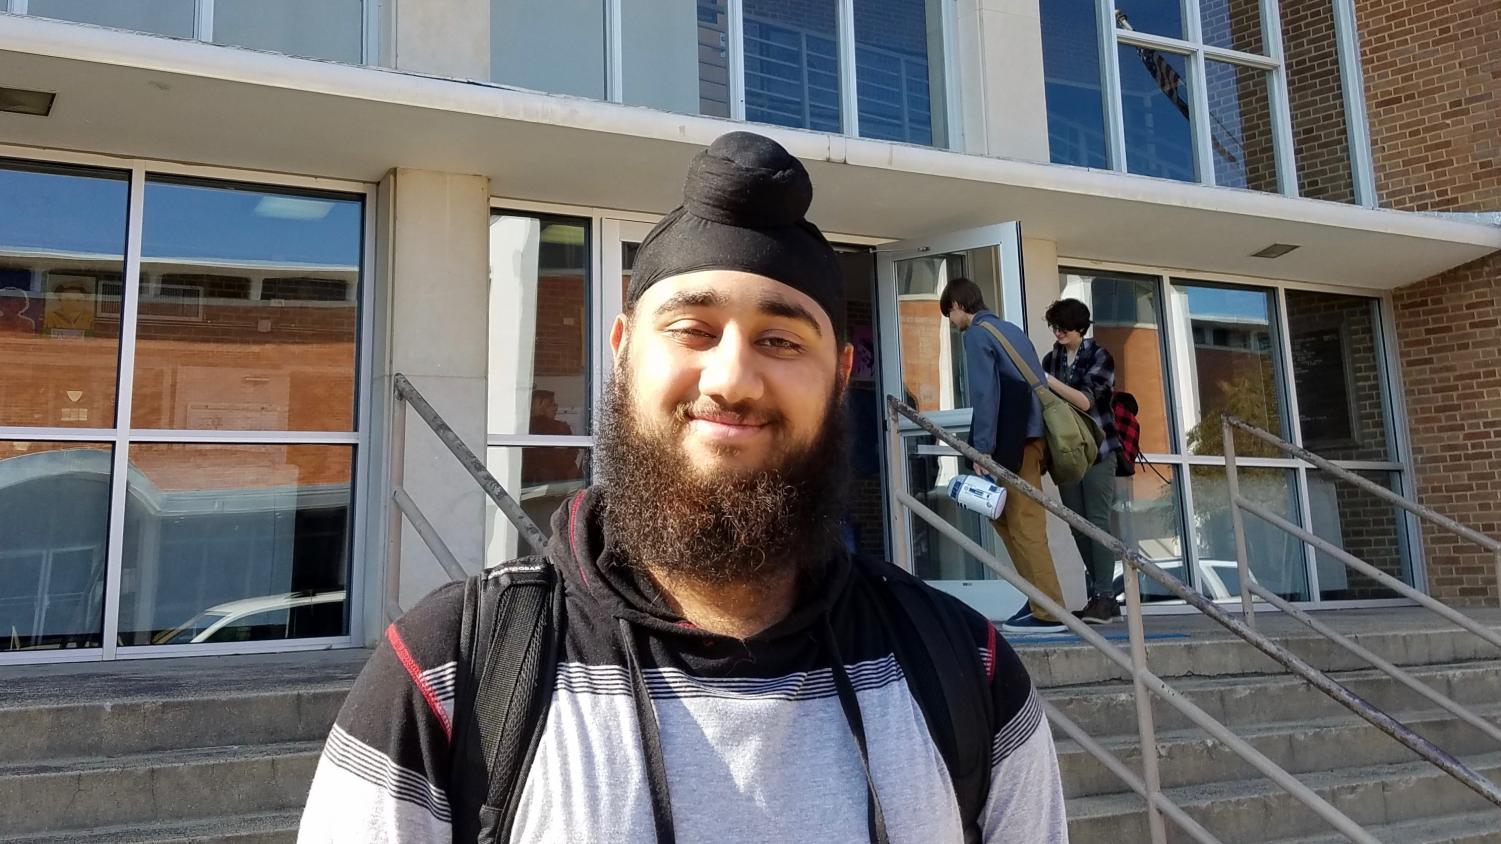 Harpreet Singh puts on a bright smile before heading off to afternoon classes.